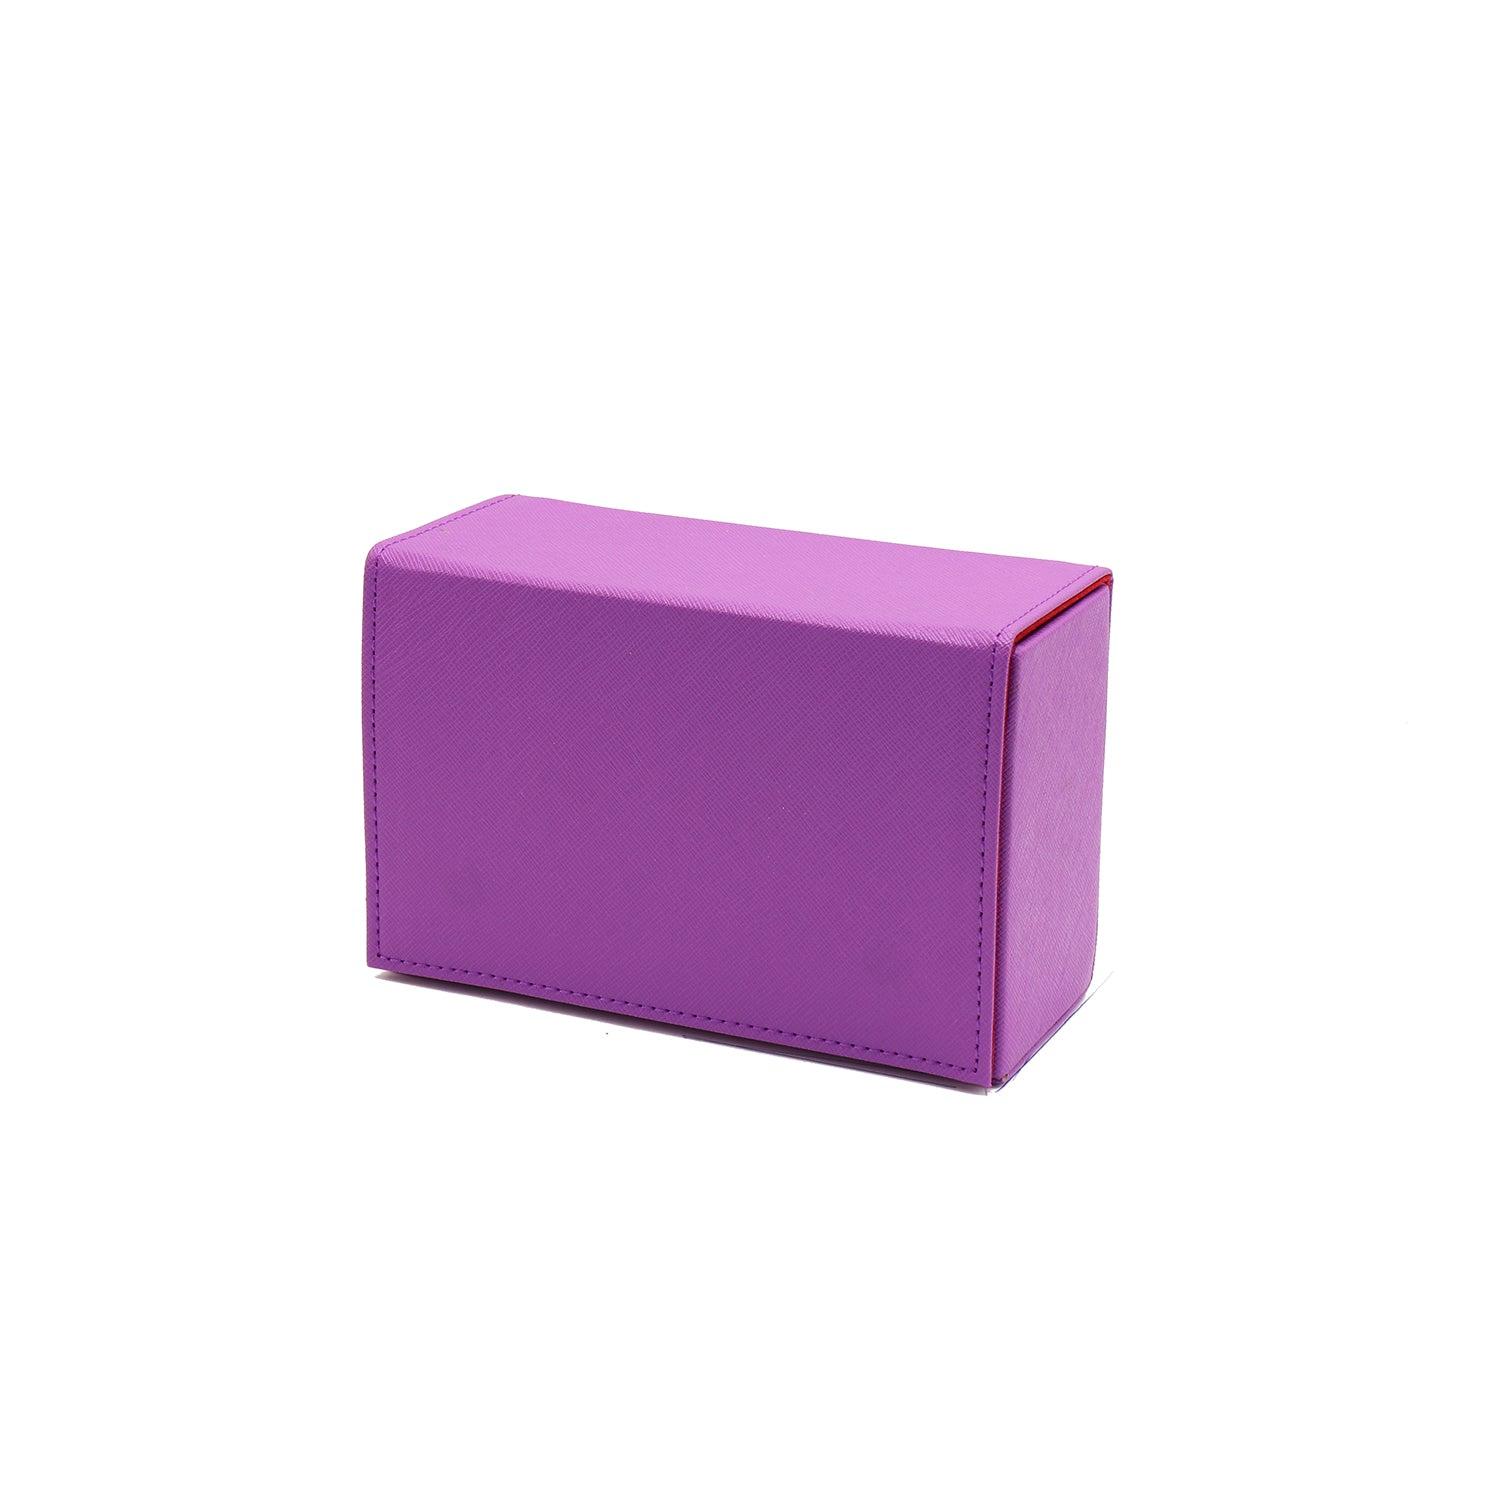 Dex Protection: The Dualist Deckbox - Purple